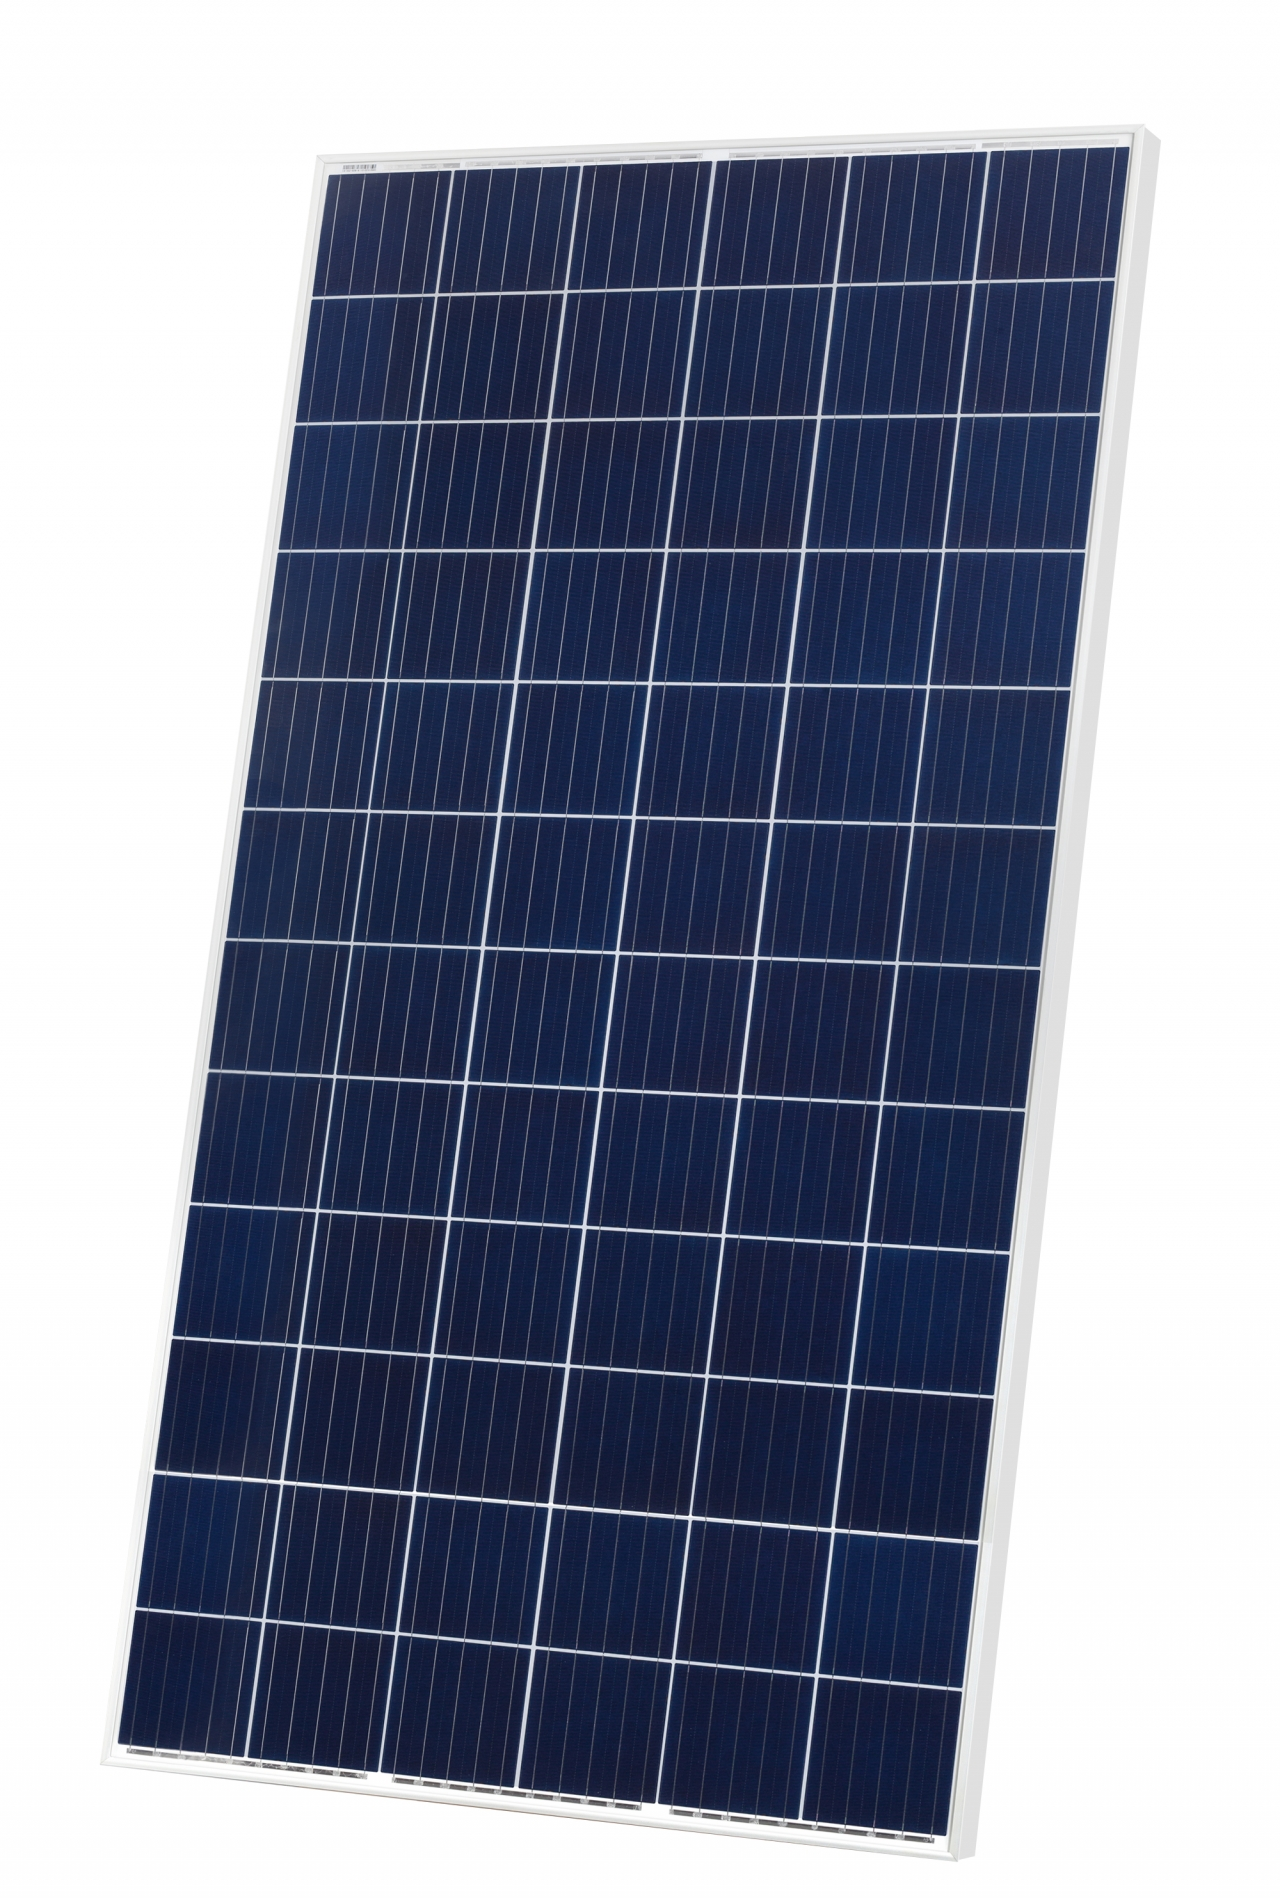 Just Solar Jst315 345p 72 Solar Panel Datasheet Enf Panel Directory